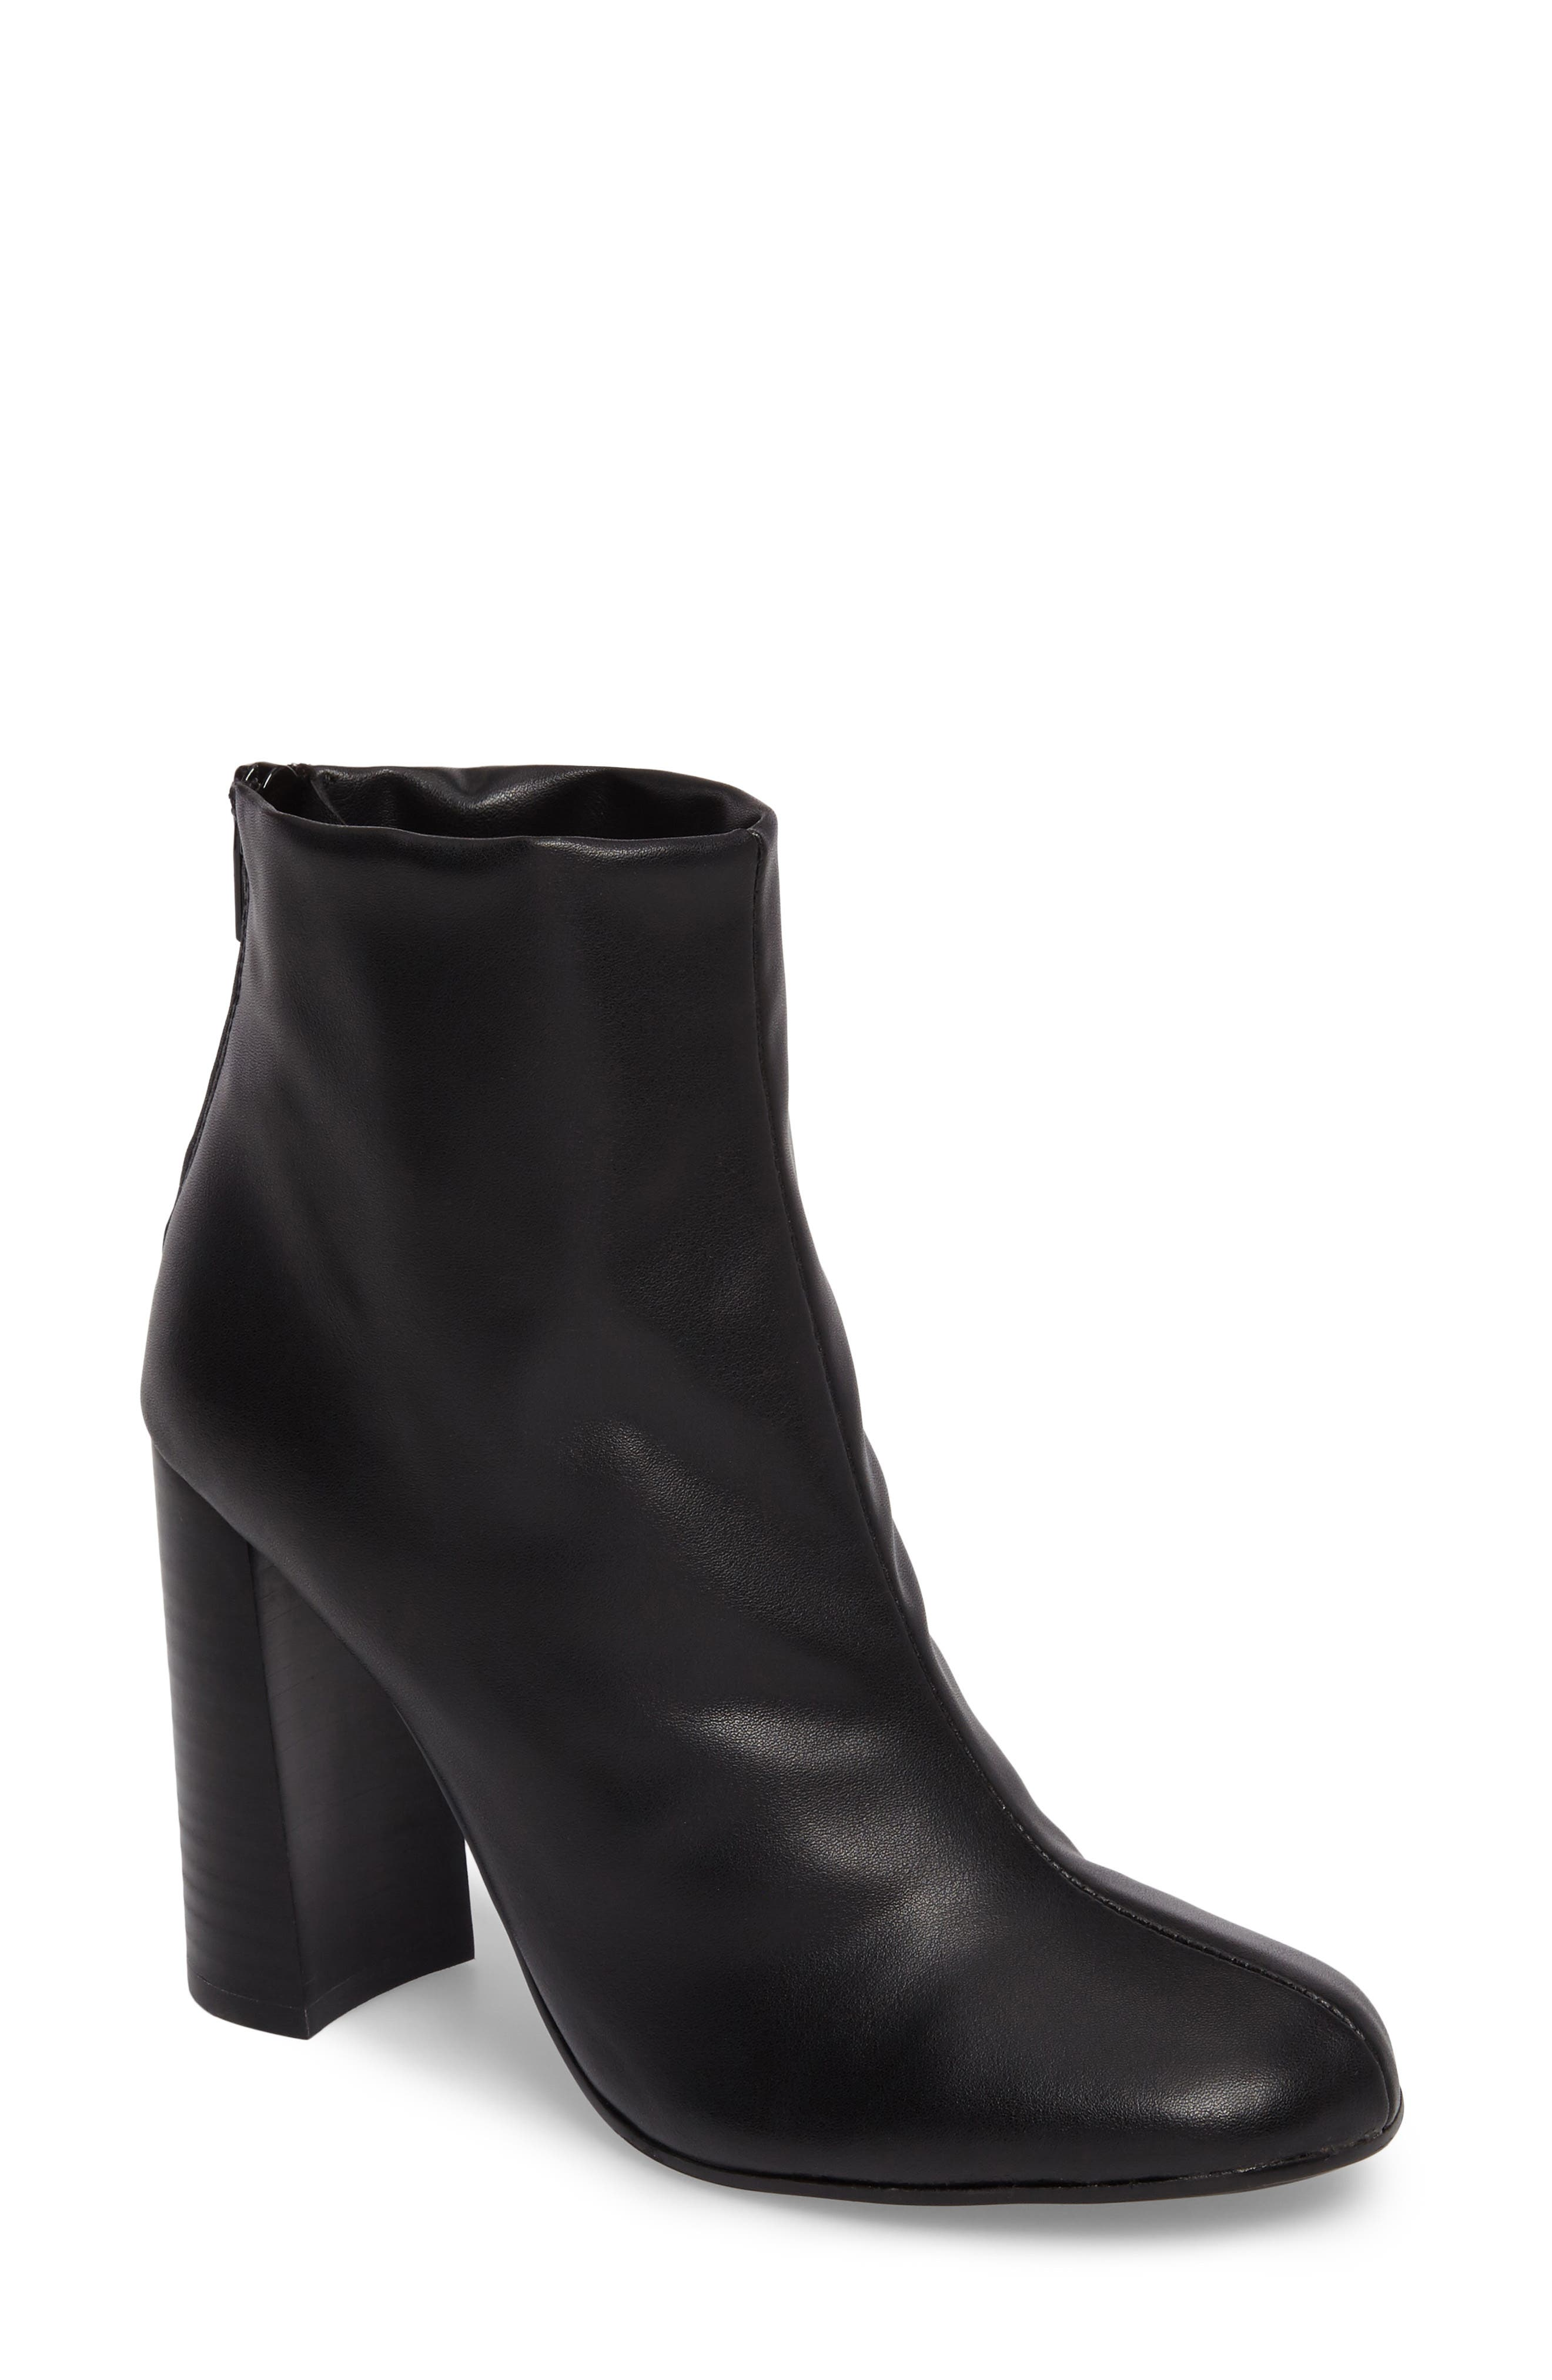 Nyx Stretch Bootie,                             Main thumbnail 1, color,                             Black Nappa Leather